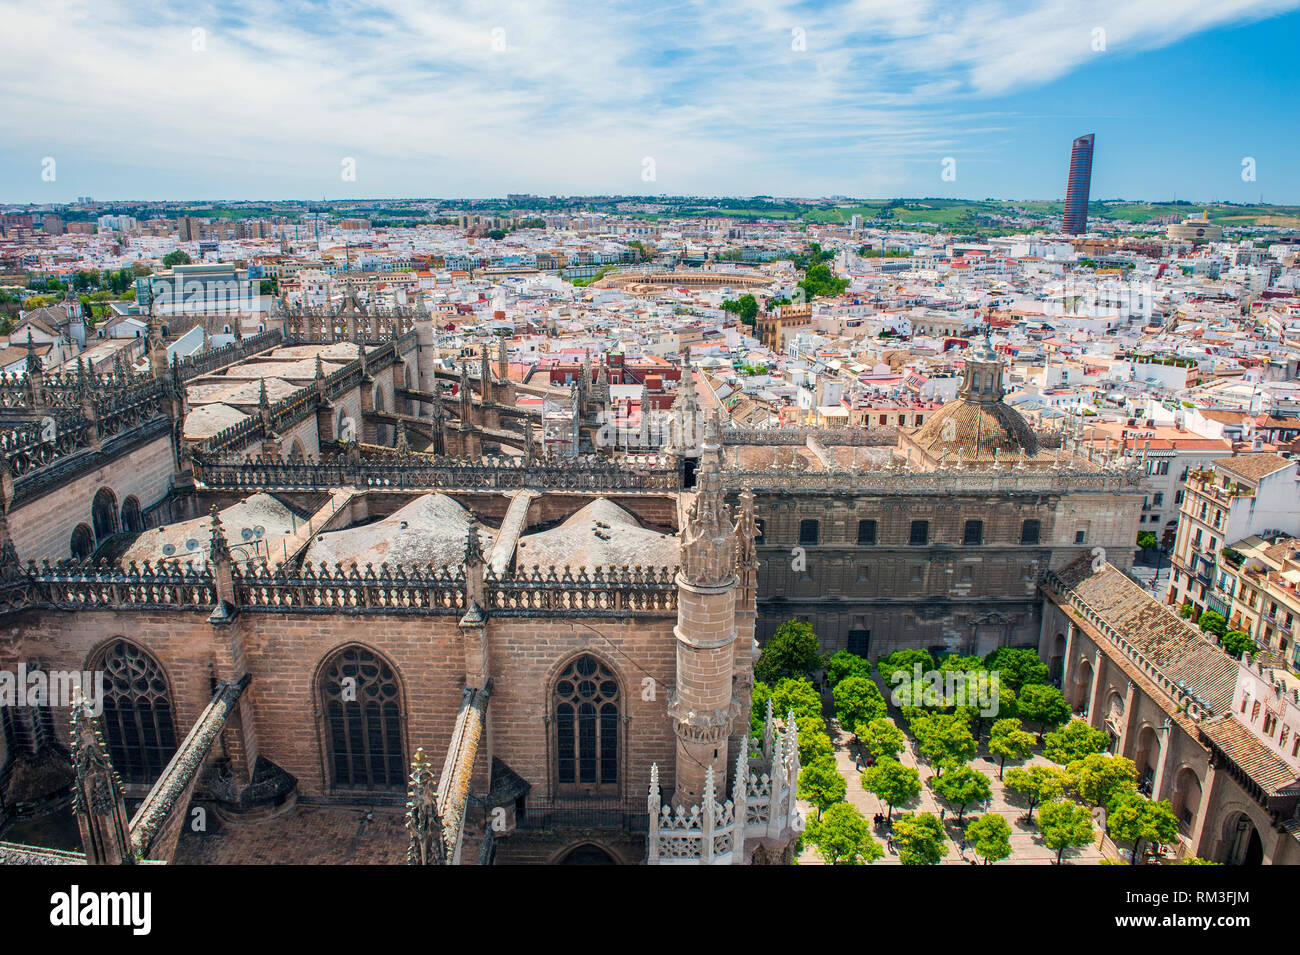 Looking down on Seville Cathedral from the church's 11th century Giralda. Built on the site of the Moorish 12th century Almohad mosque, it is one of t Stock Photo